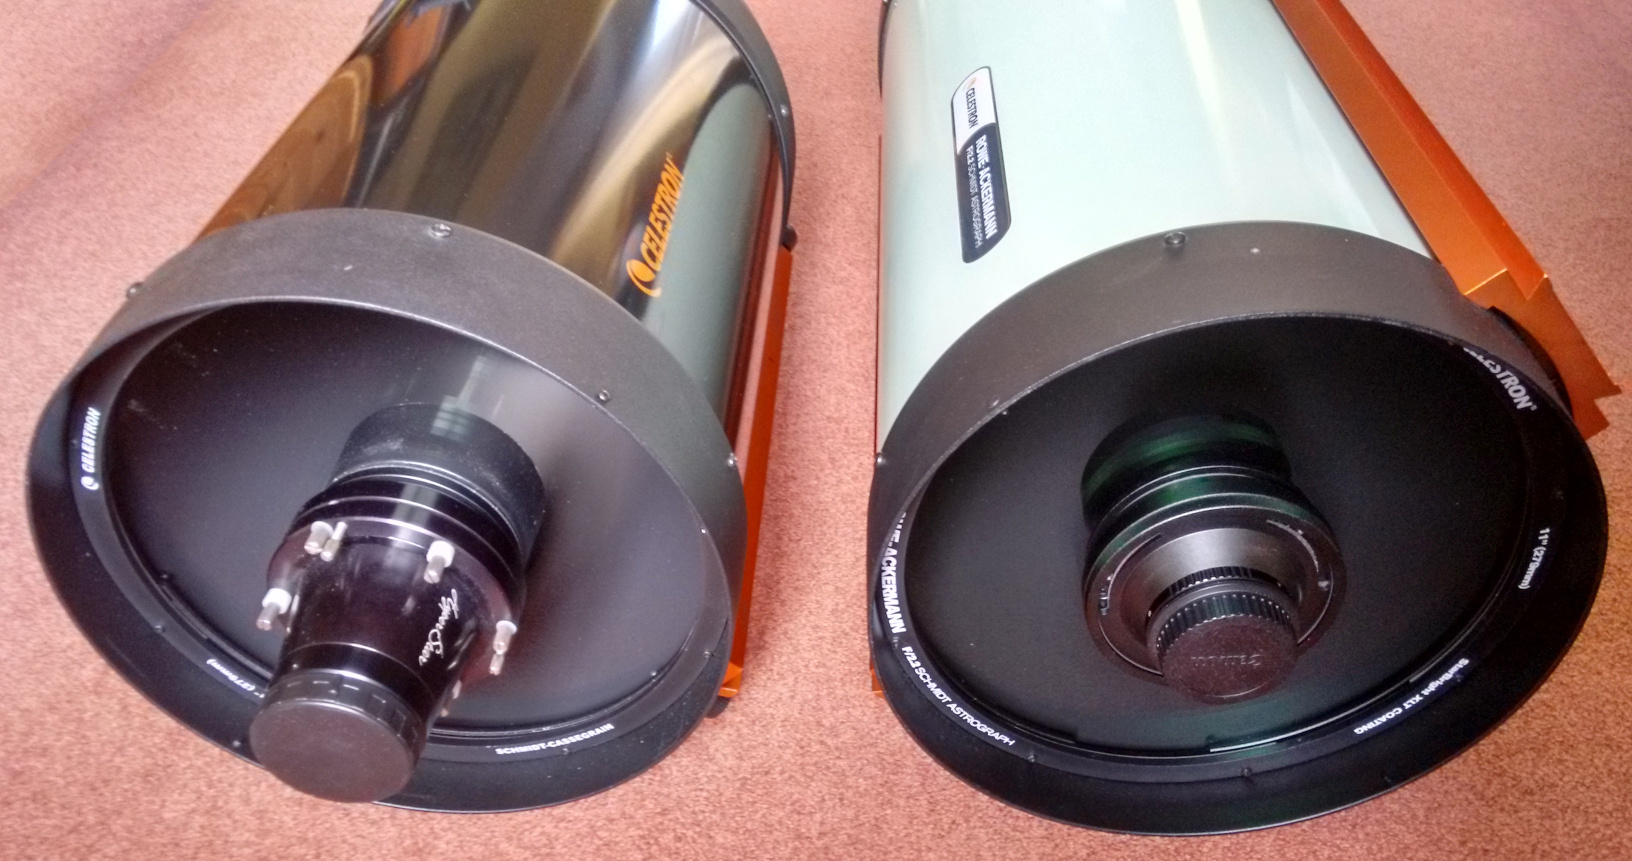 A HyperStar3-enabled Celestron C11 optical tube (left) permits one to image at similar photographic speeds to the new Rowe-Ackermann Schmidt Astrograph (RASA), but the HyperStar corrector lens system is not optimised for the optical tube that it is used with. RASA is a tightly-integrated system optimised for full-frame sensors, whereas HyperStar3 is limited to APS-C-sized DSLRs. Image credit: Ade Ashford.